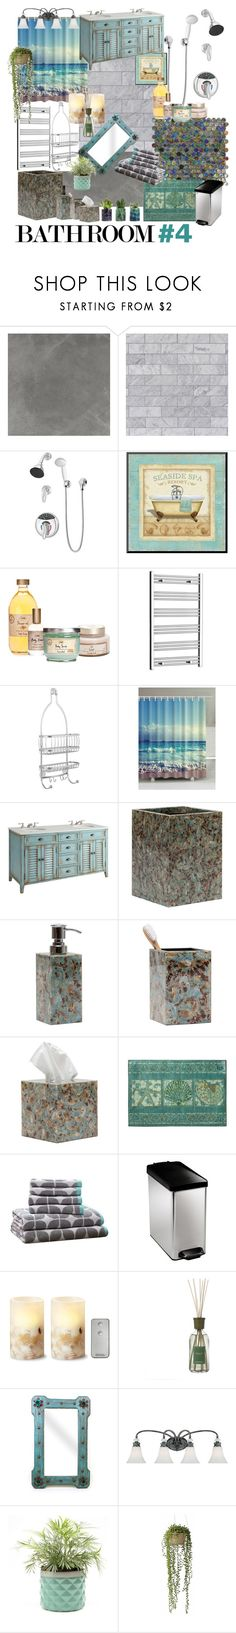 """""""Geen titel #318"""" by miriam-witte ❤ liked on Polyvore featuring interior, interiors, interior design, home, home decor, interior decorating, WALL, Symmons, InterDesign and Pigeon & Poodle"""